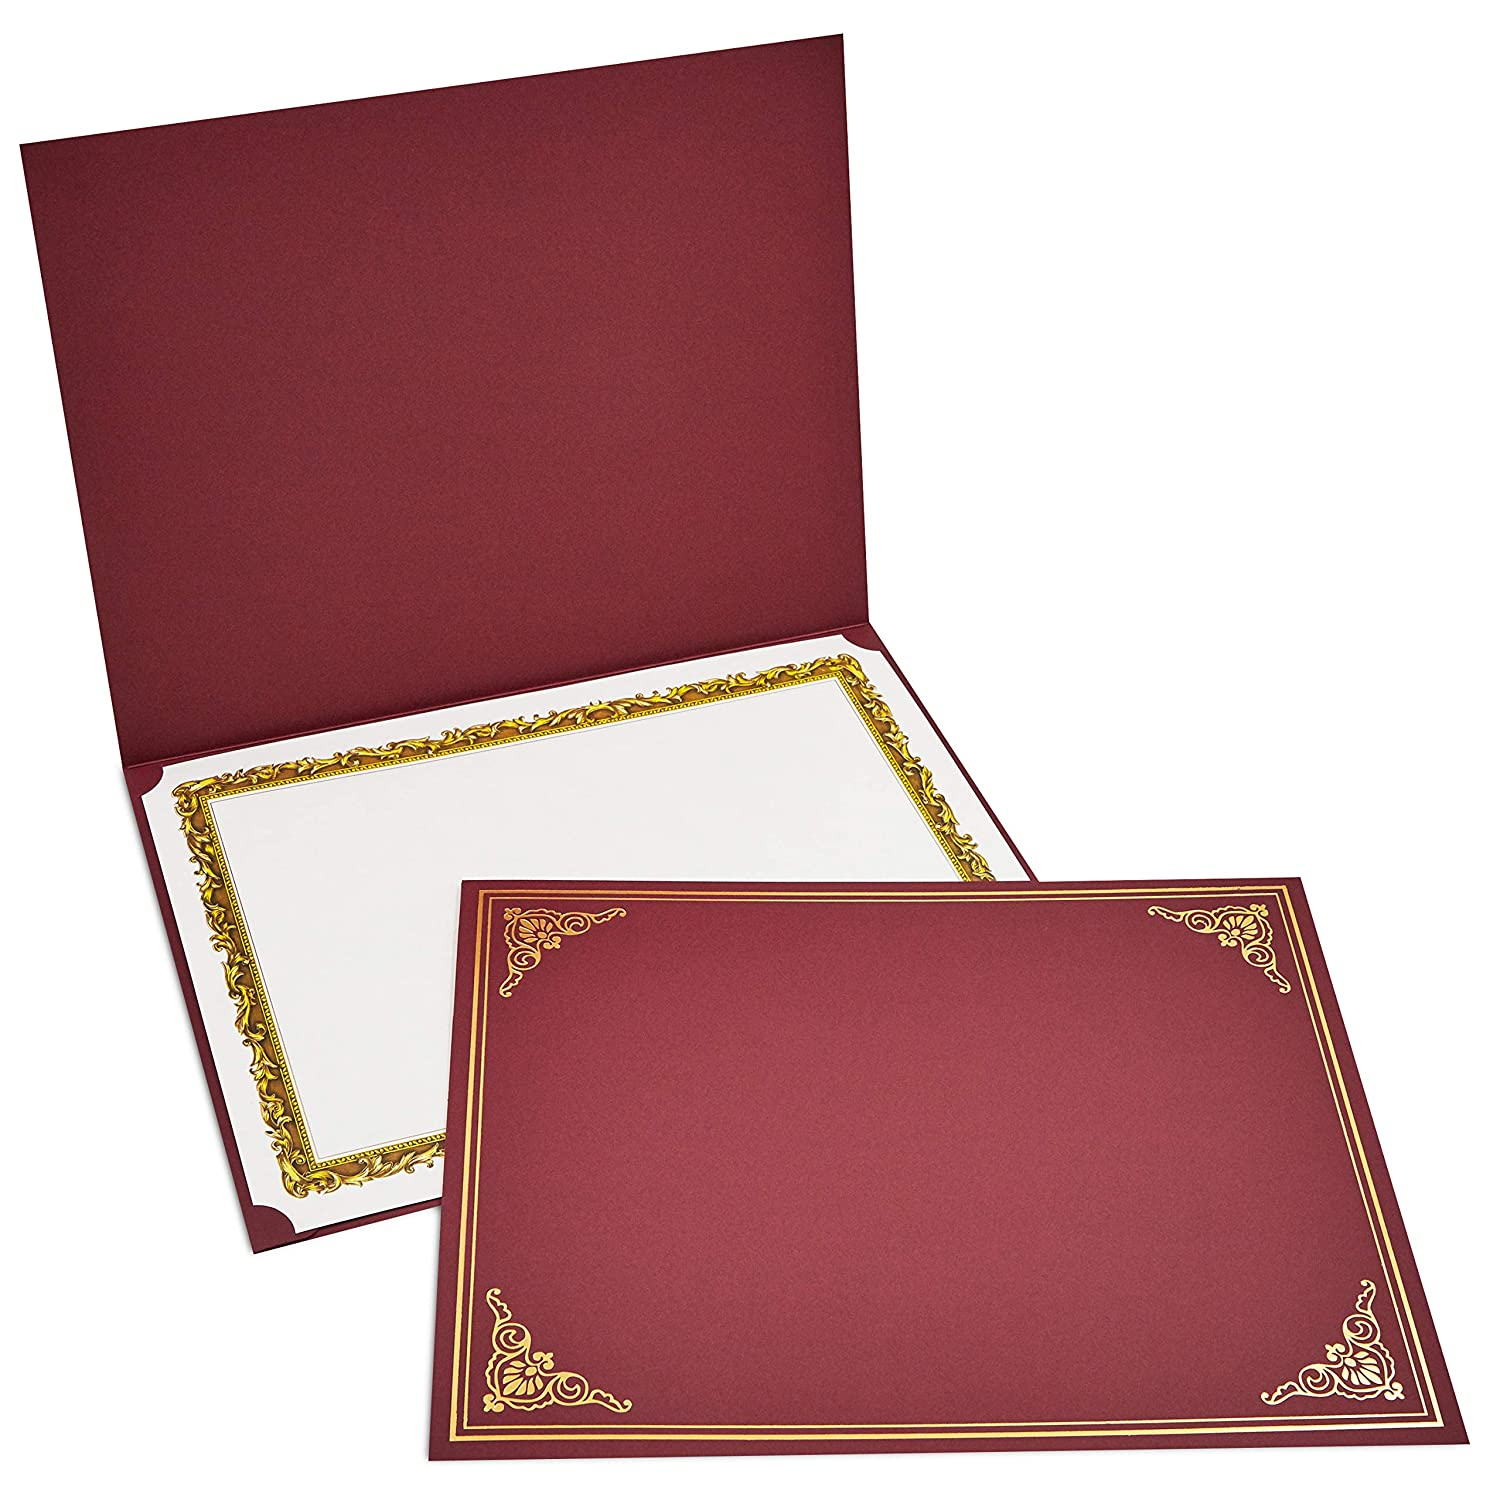 12-Pack Certificate Holder - Diploma Cover, Document Cover for Letter-Sized Award Certificates, Red, Gold Foil, 11.2 x 8.8 Inches